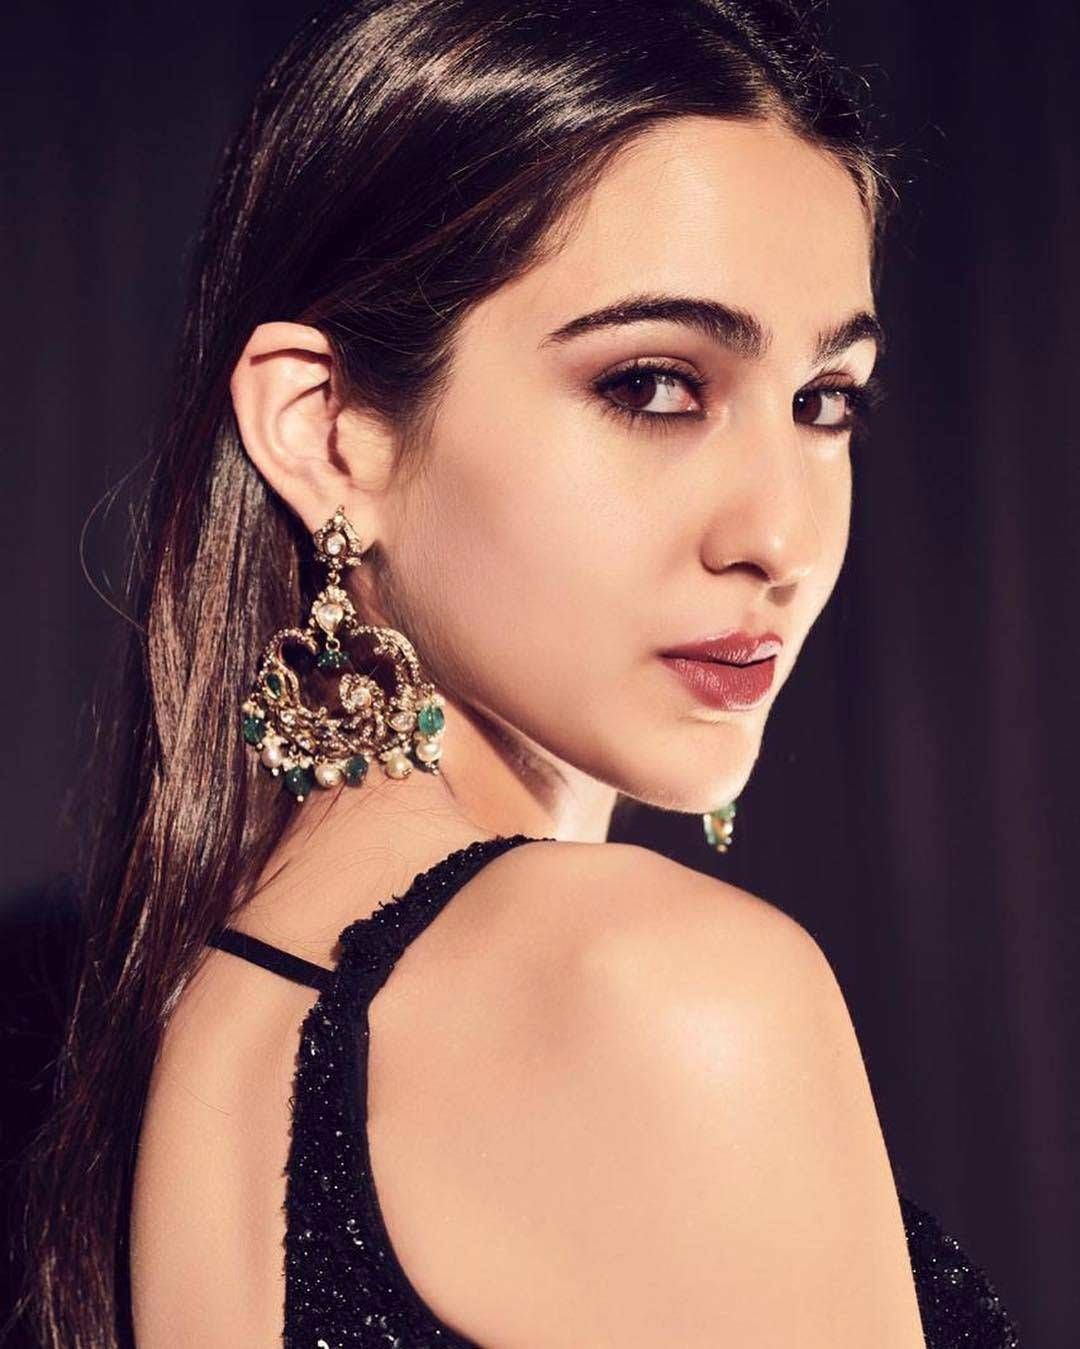 Sara Ali Khan recently made her Bollywood debut with Abhishek Kapoor's Kedarnath. Even though the film opened to a mixed response by the audience, Sara's efforts in her debut film sure received a lot of praise. In fact, even before the release of Kedarnath, Sara amused many with her wit and confidence during the promotions of her film and her appearance on Koffee With Karan.   The actress is aware that people love her for her honest and real behaviour. Talking about the same, Sara told a leading daily,